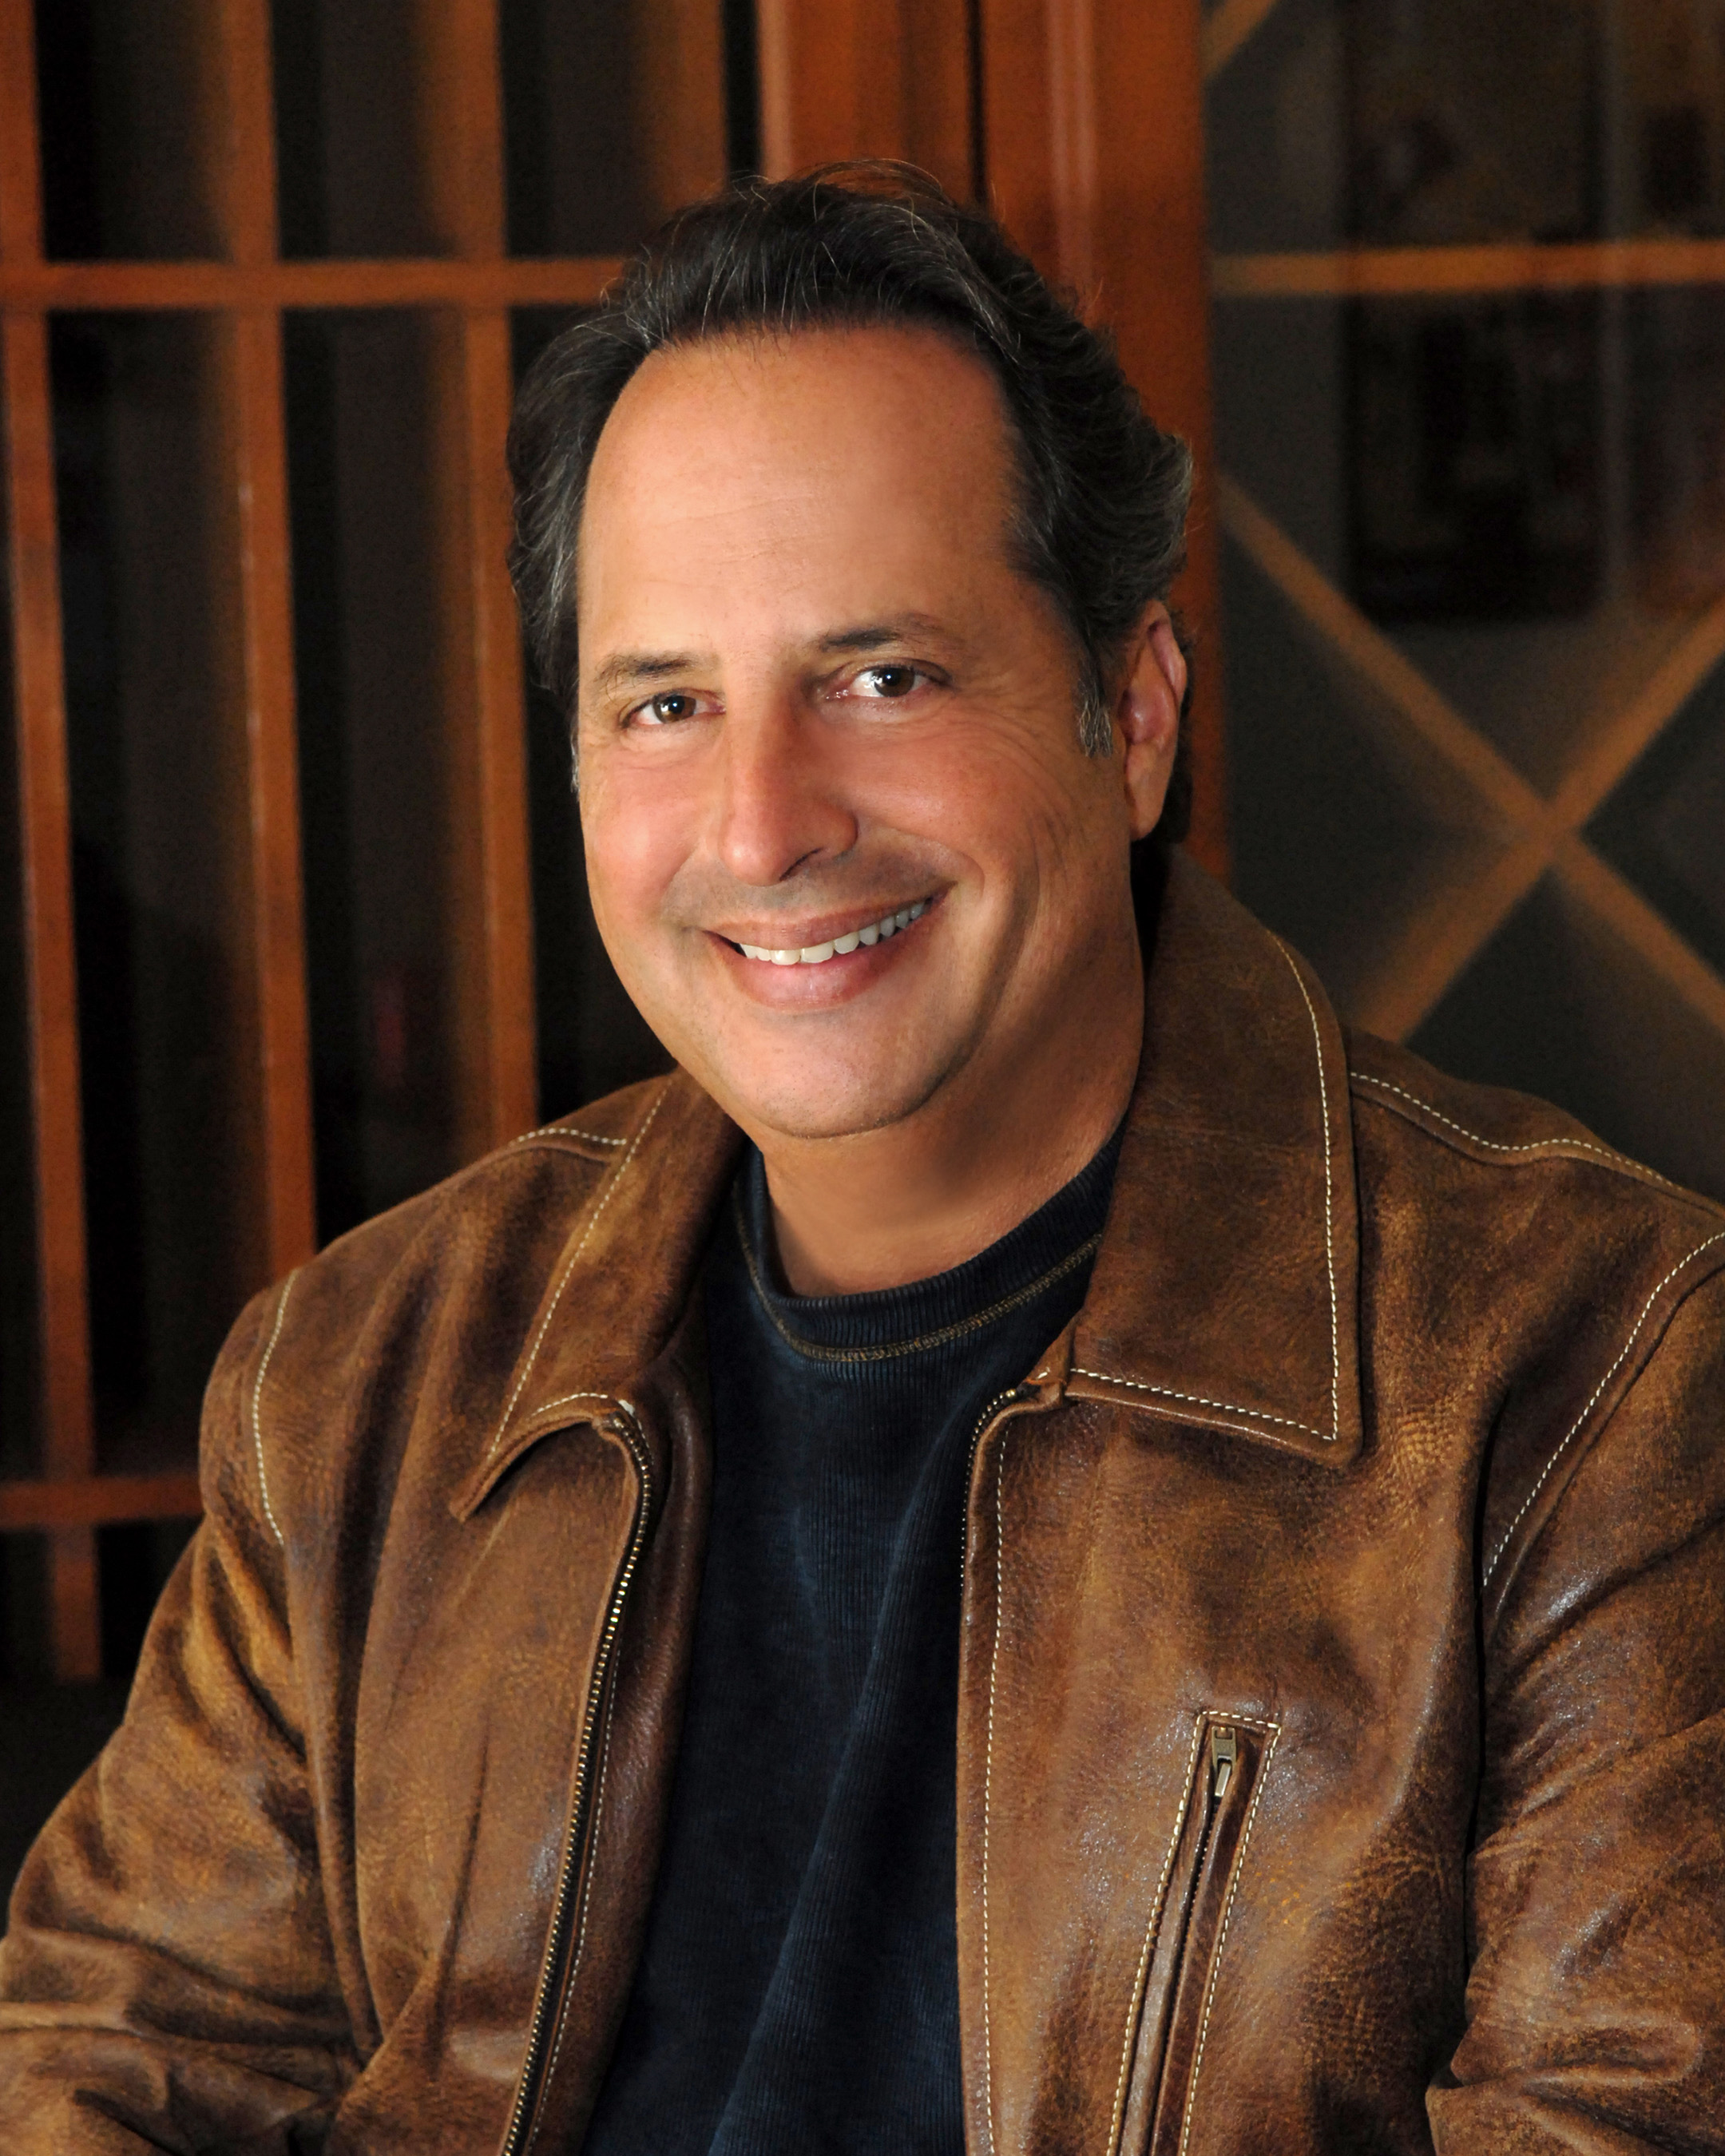 Multi-faceted entertainer Jon Lovitz co-headlines the first comedy residency inside The Foundry at SLS Las Vegas with long-time friend Dana Carvey.